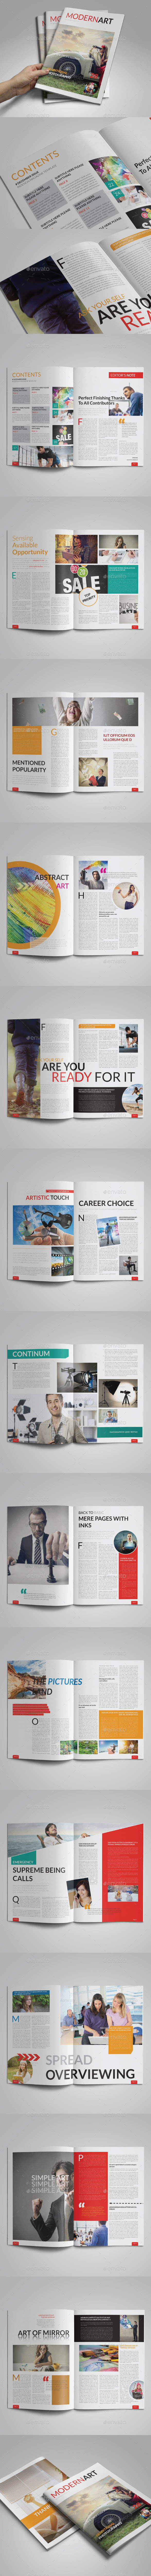 Magazine Layout Template Issue 15 - Magazines Print Templates